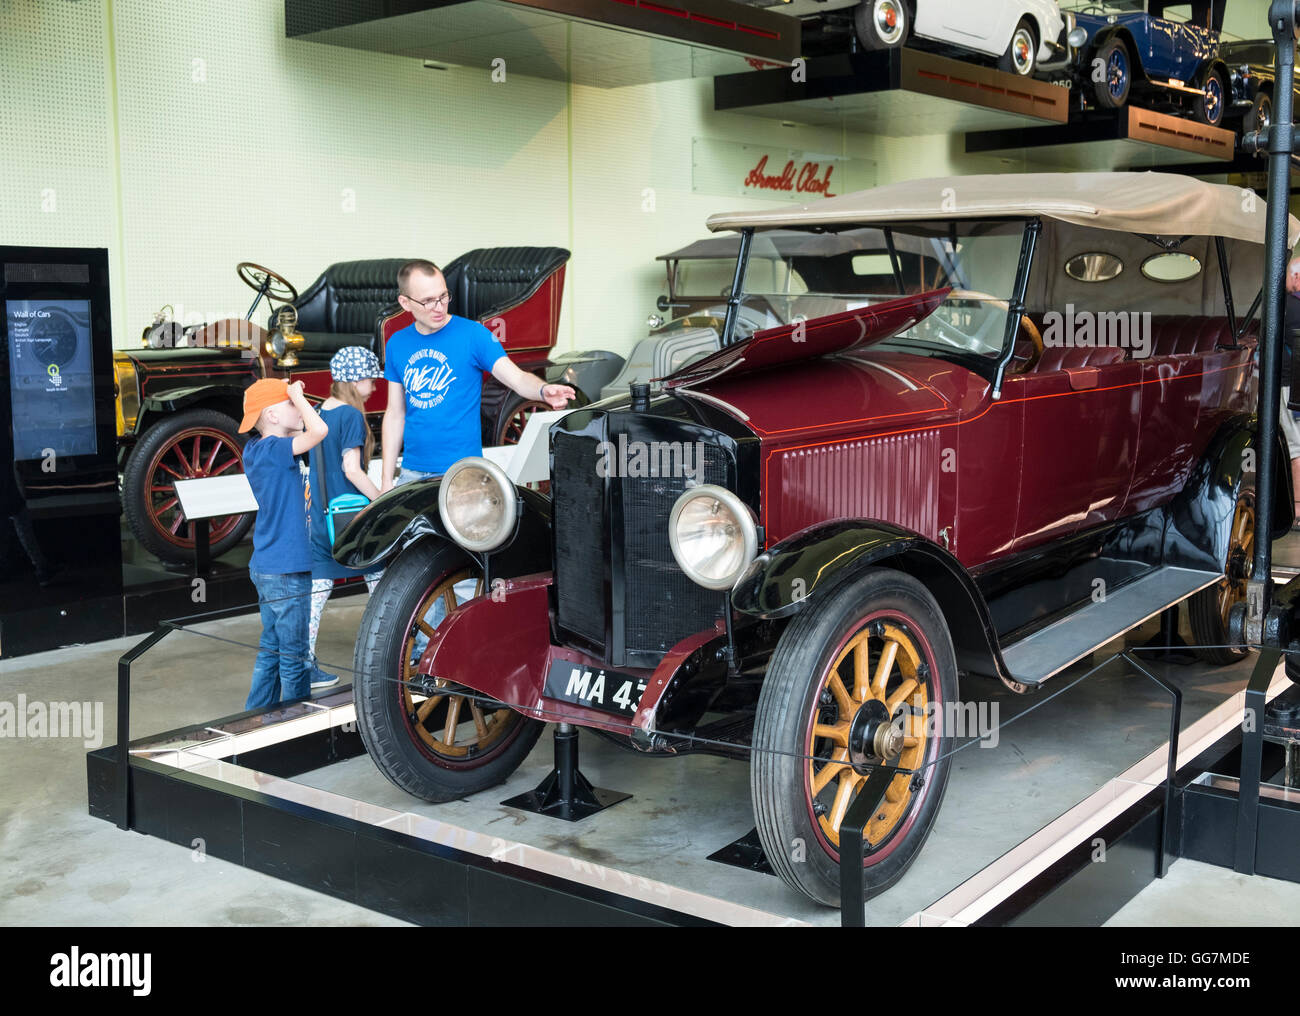 Visitors looking at vintage car on display at Riverside Museum of transport in Glasgow, Scotland, United Kingdom - Stock Image